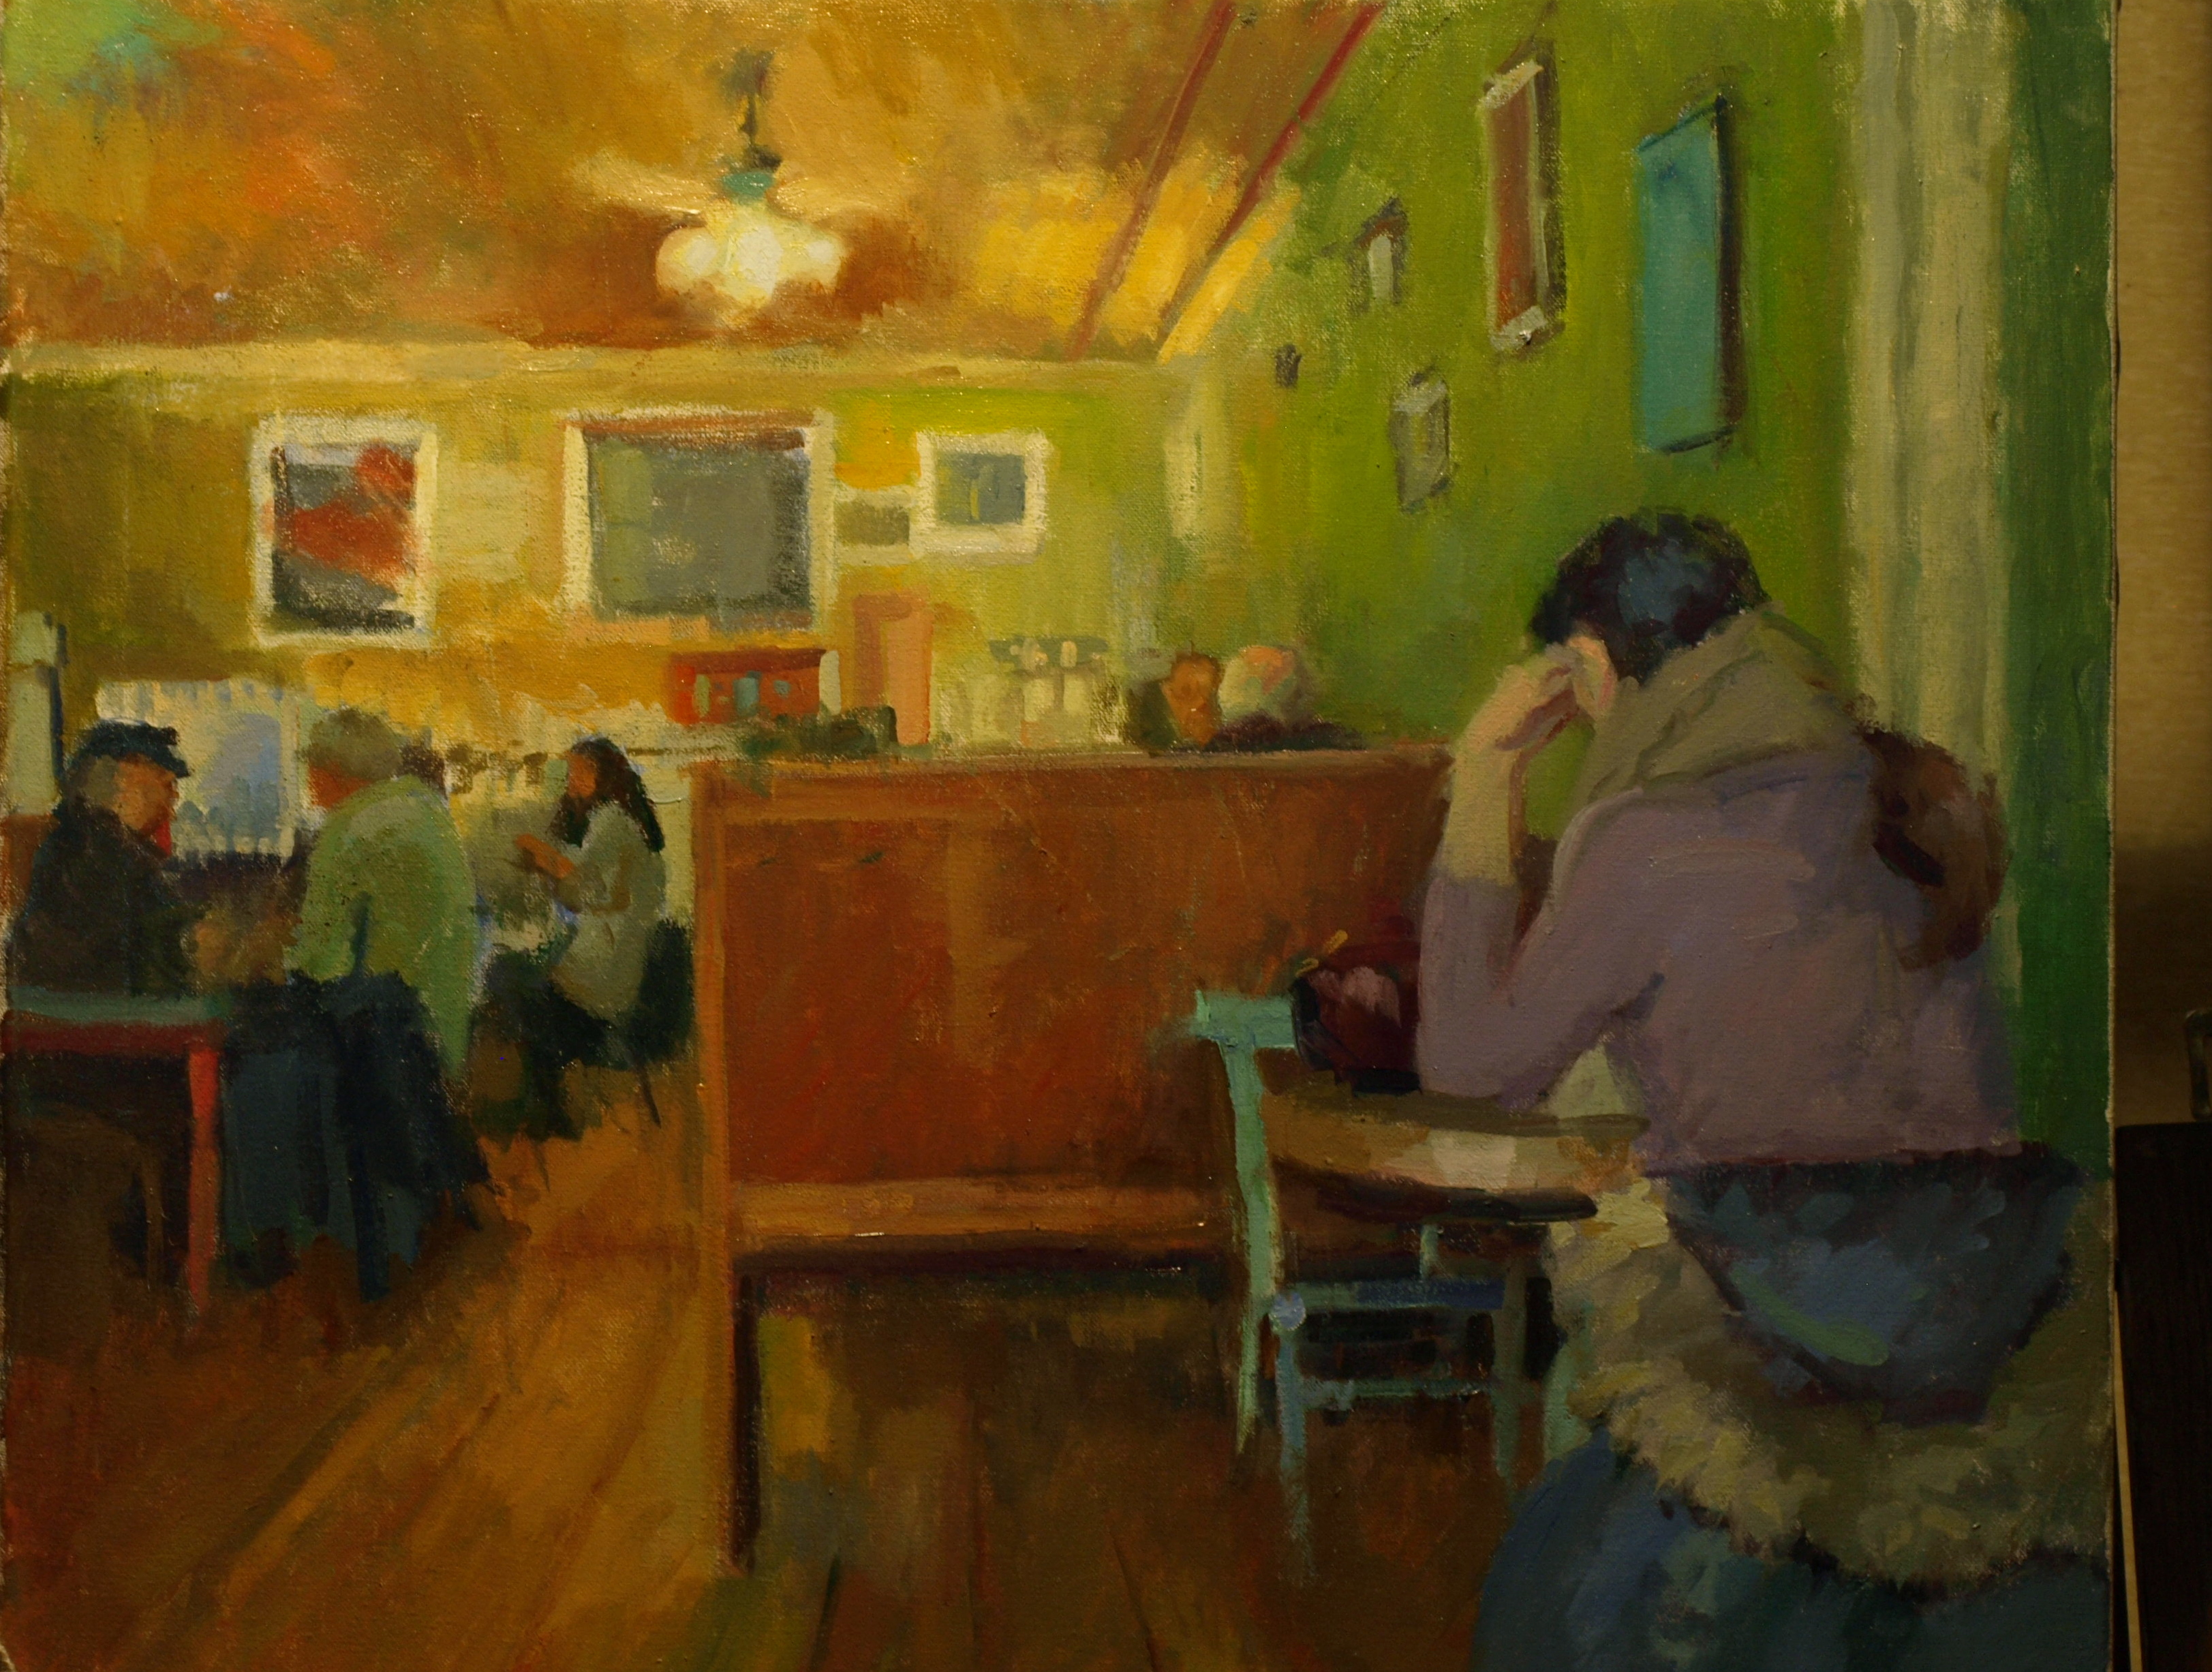 Bank Street Coffee House, Oil on Canvas, 20 x 24 Inches, by Susan Grisell, $750